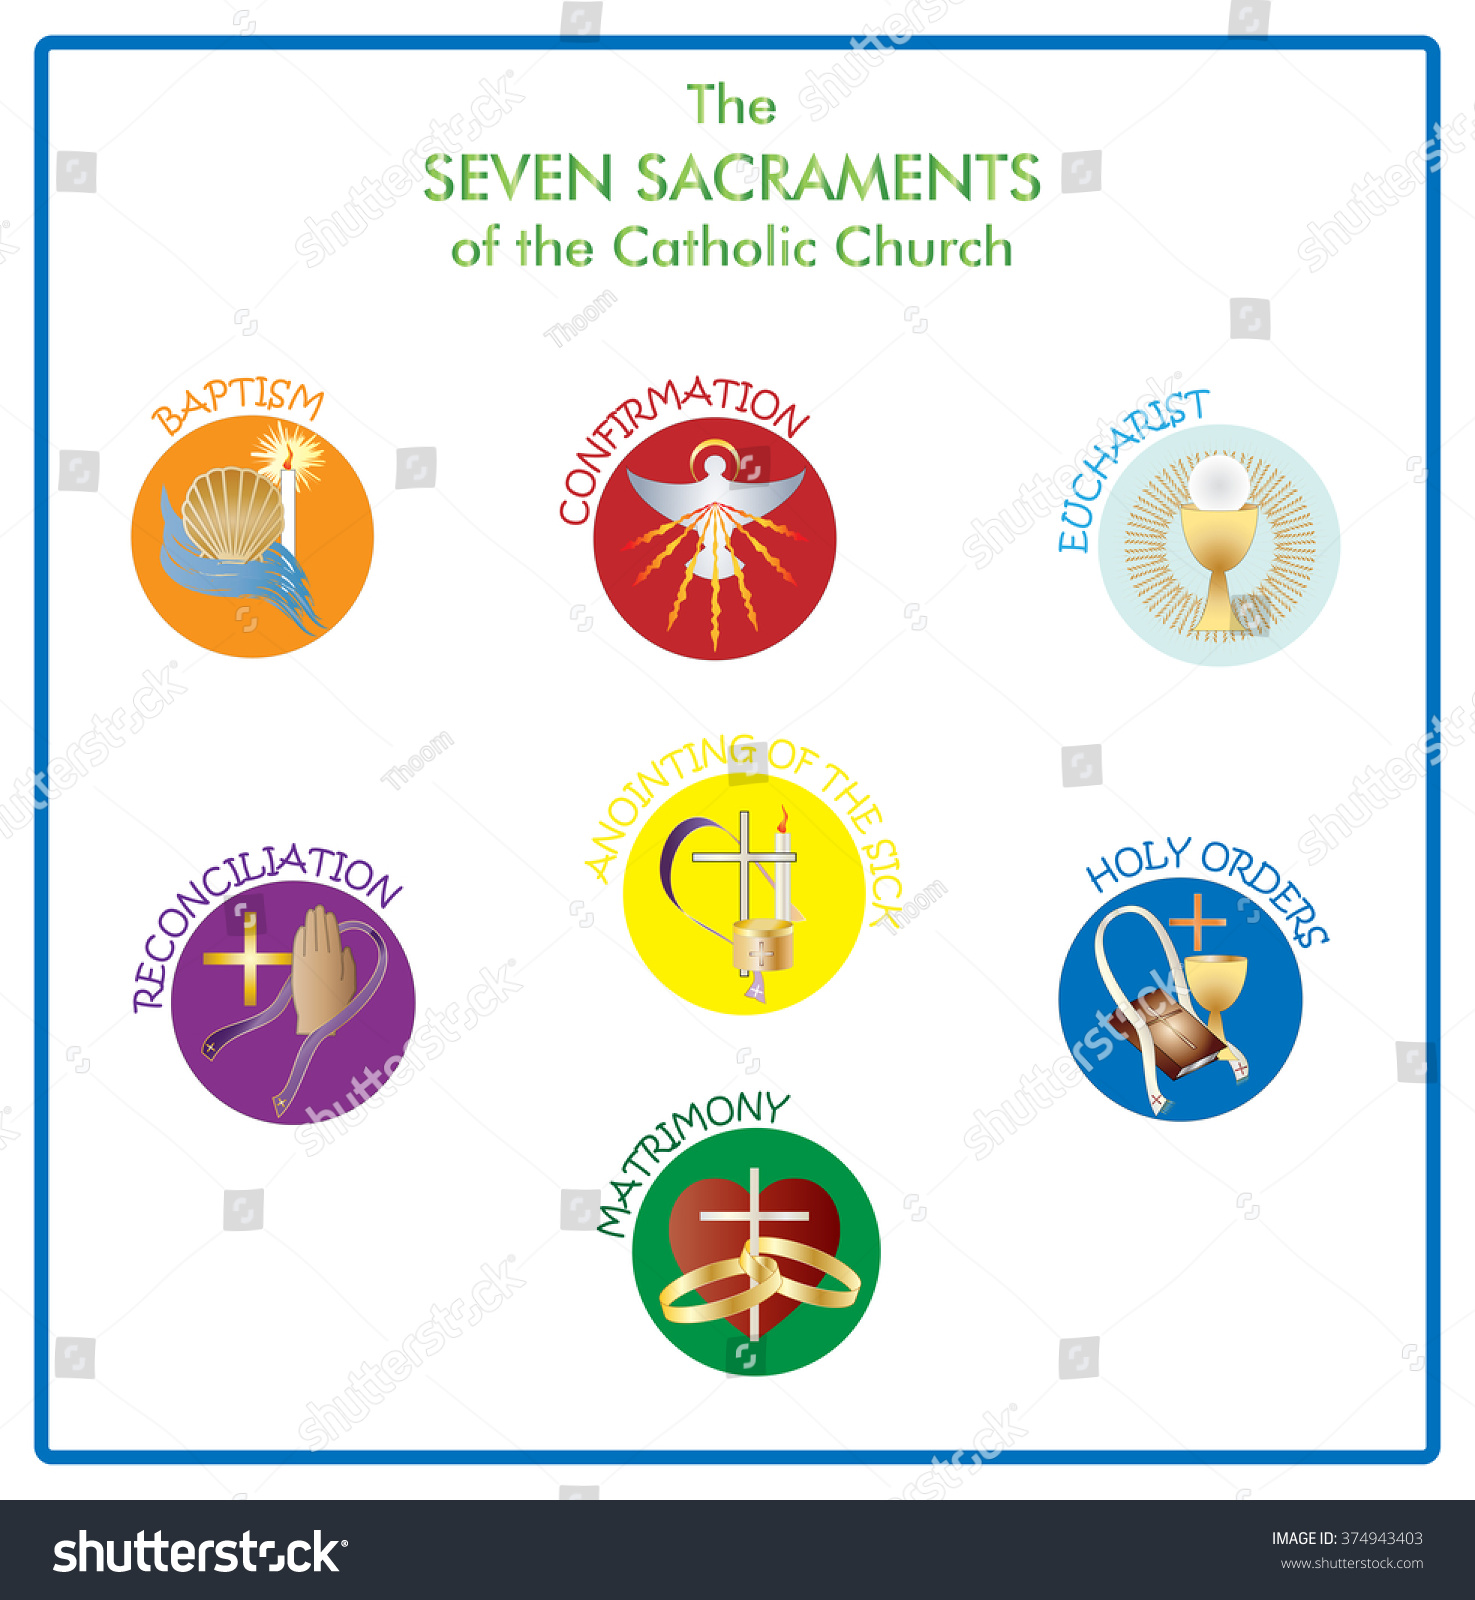 Symbols Of The Seven Sacraments Of The Catholic Church